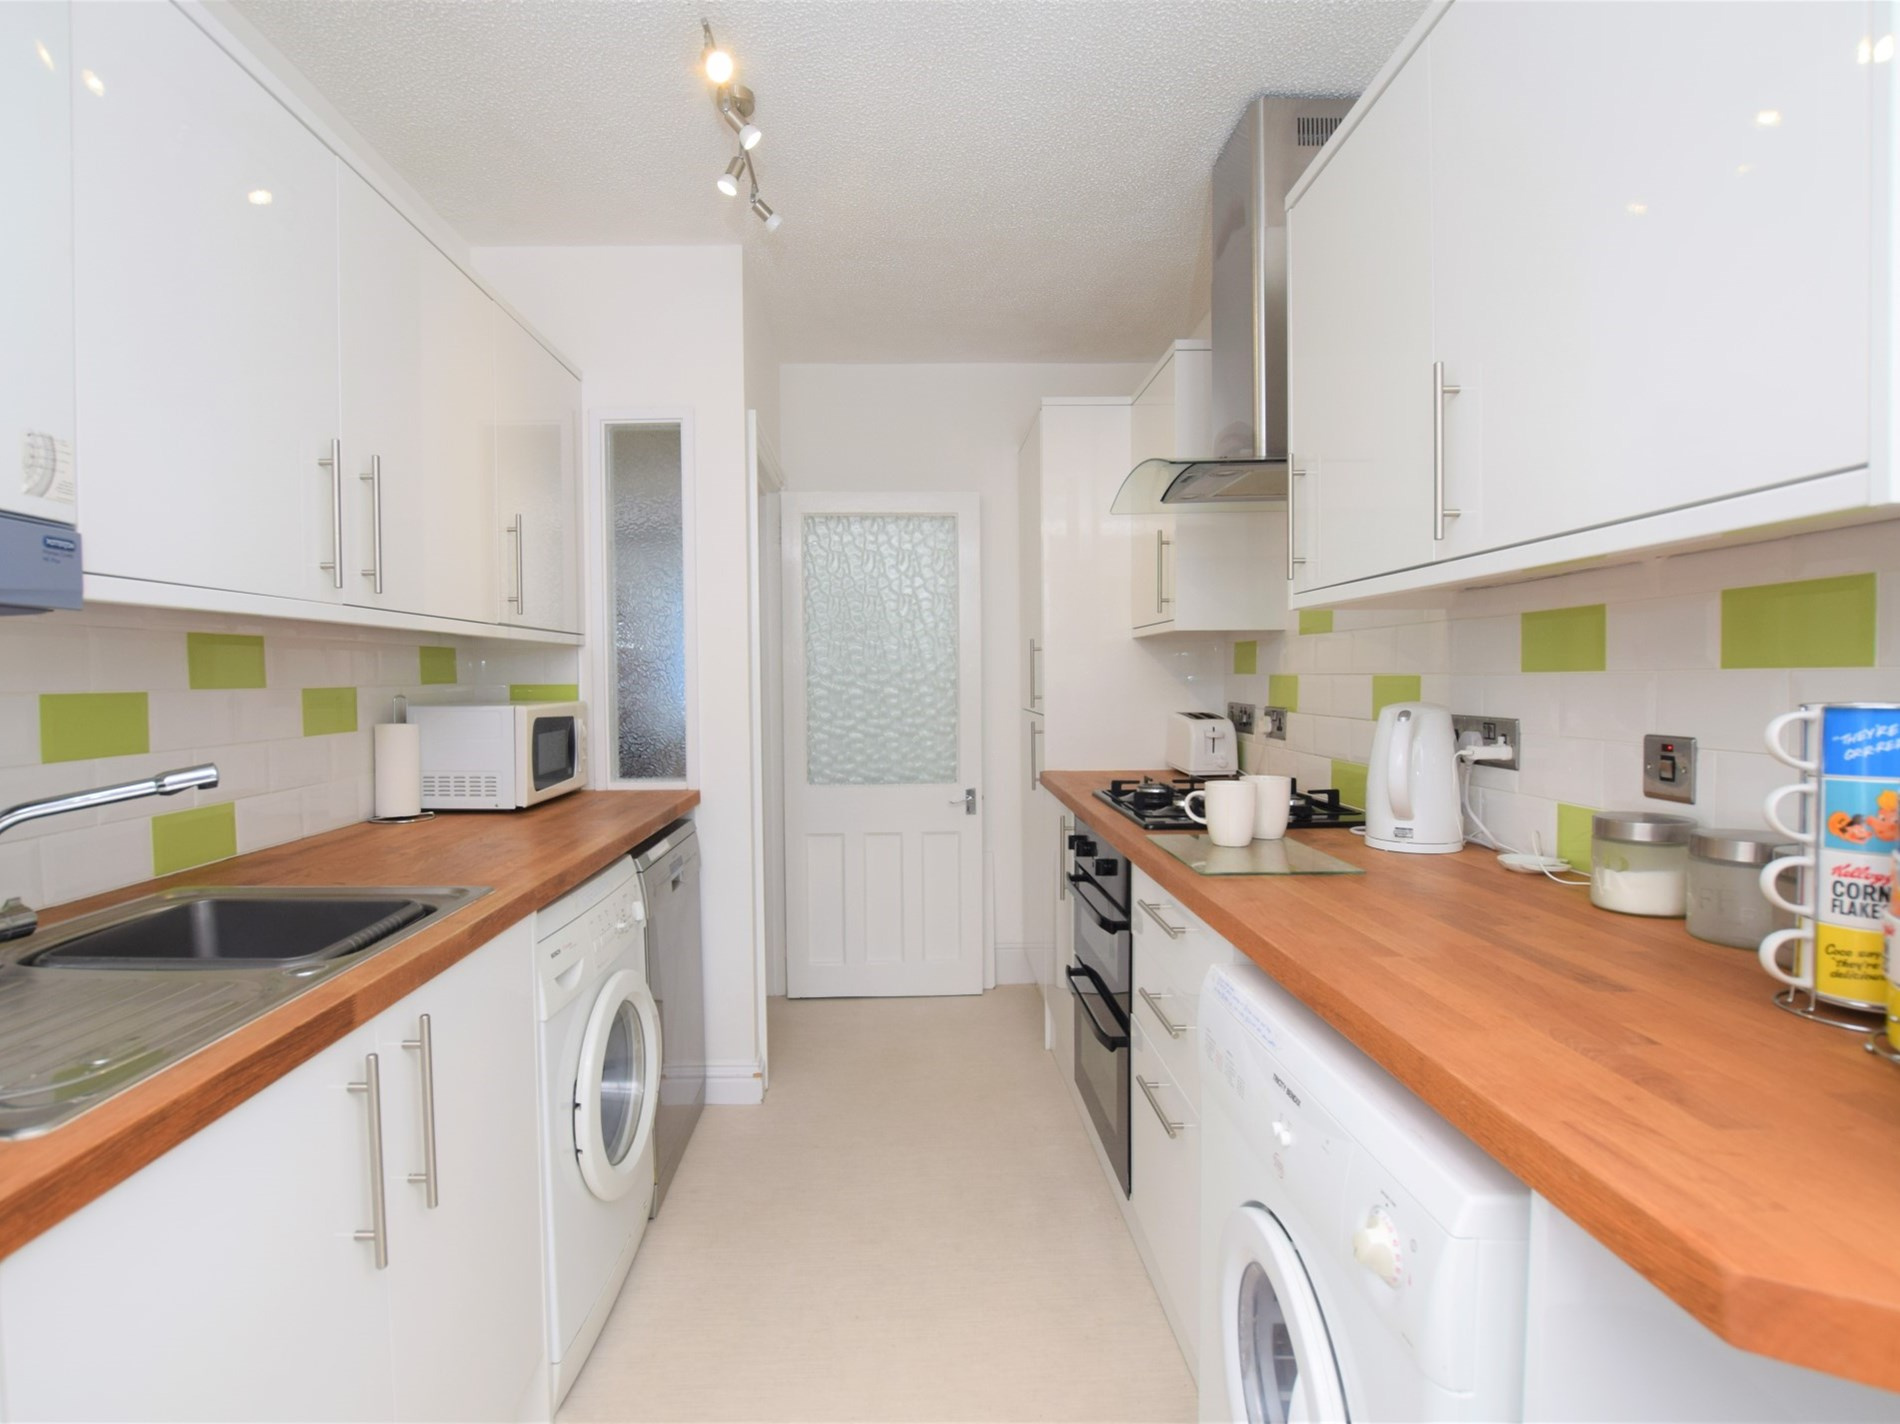 4 Bedroom Cottage in Brixham, Devon